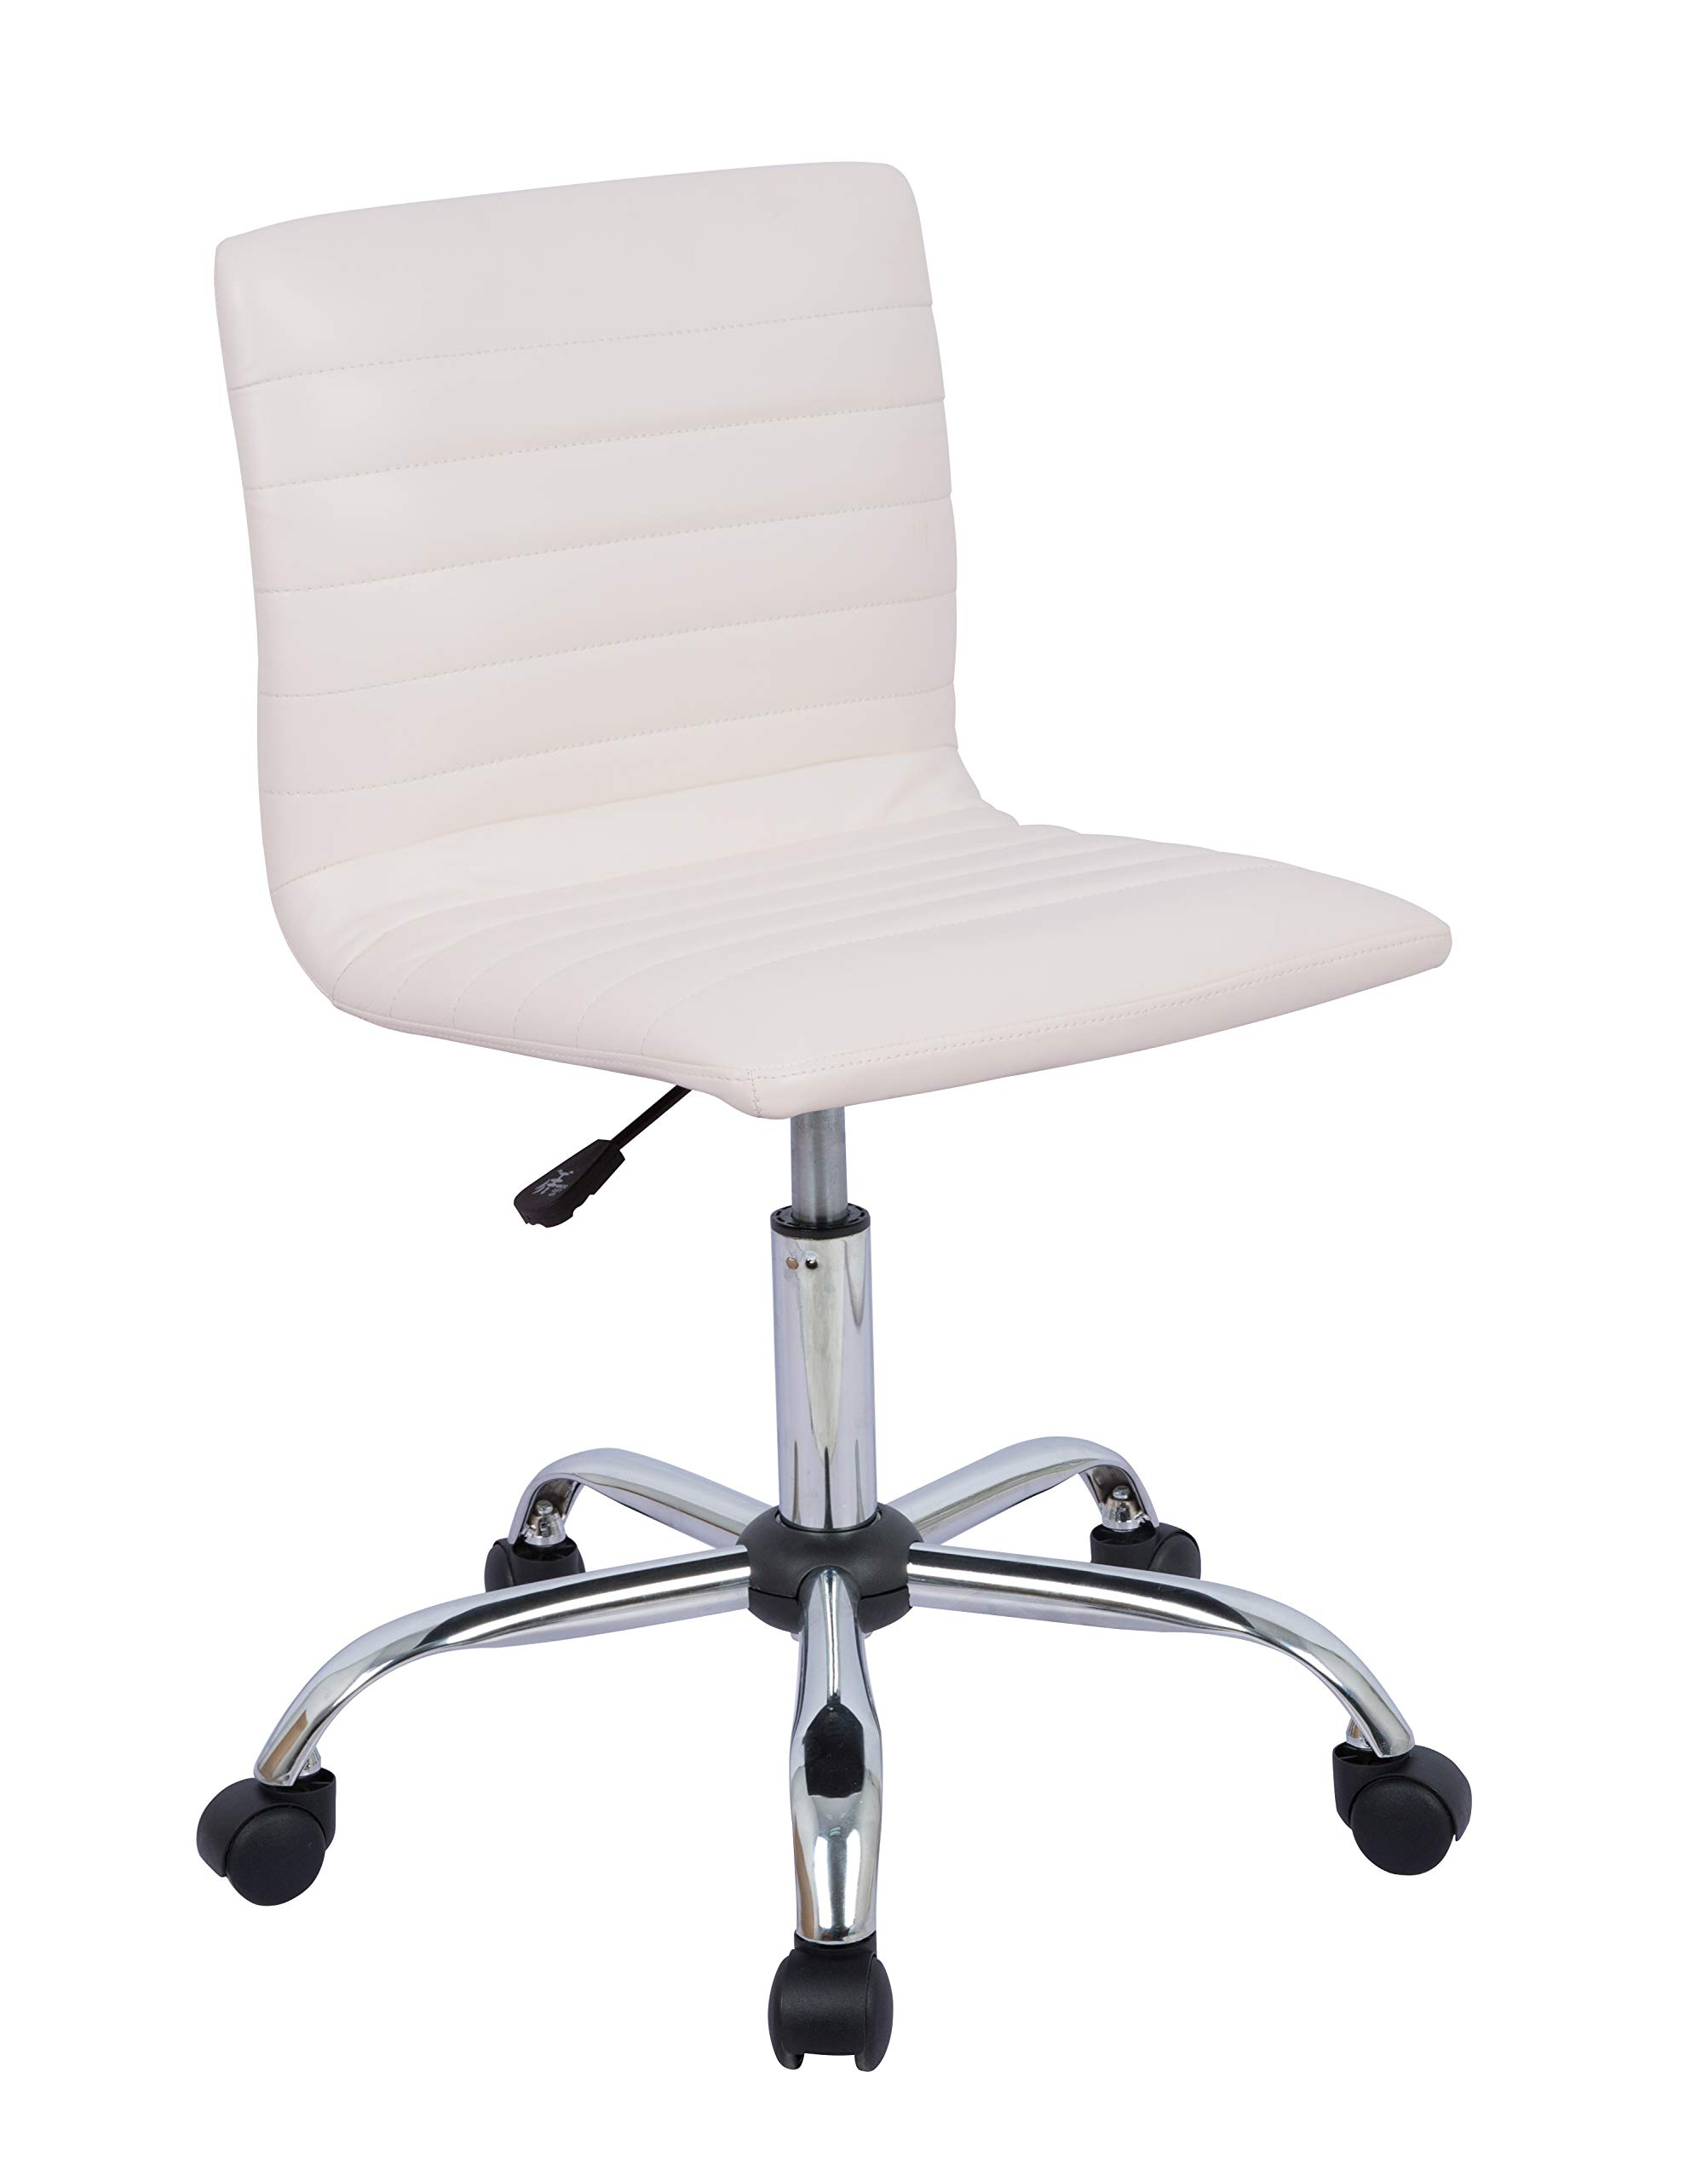 AmazonBasics Modern Adjustable Low Back Armless Ribbed Task Chair, White by AmazonBasics